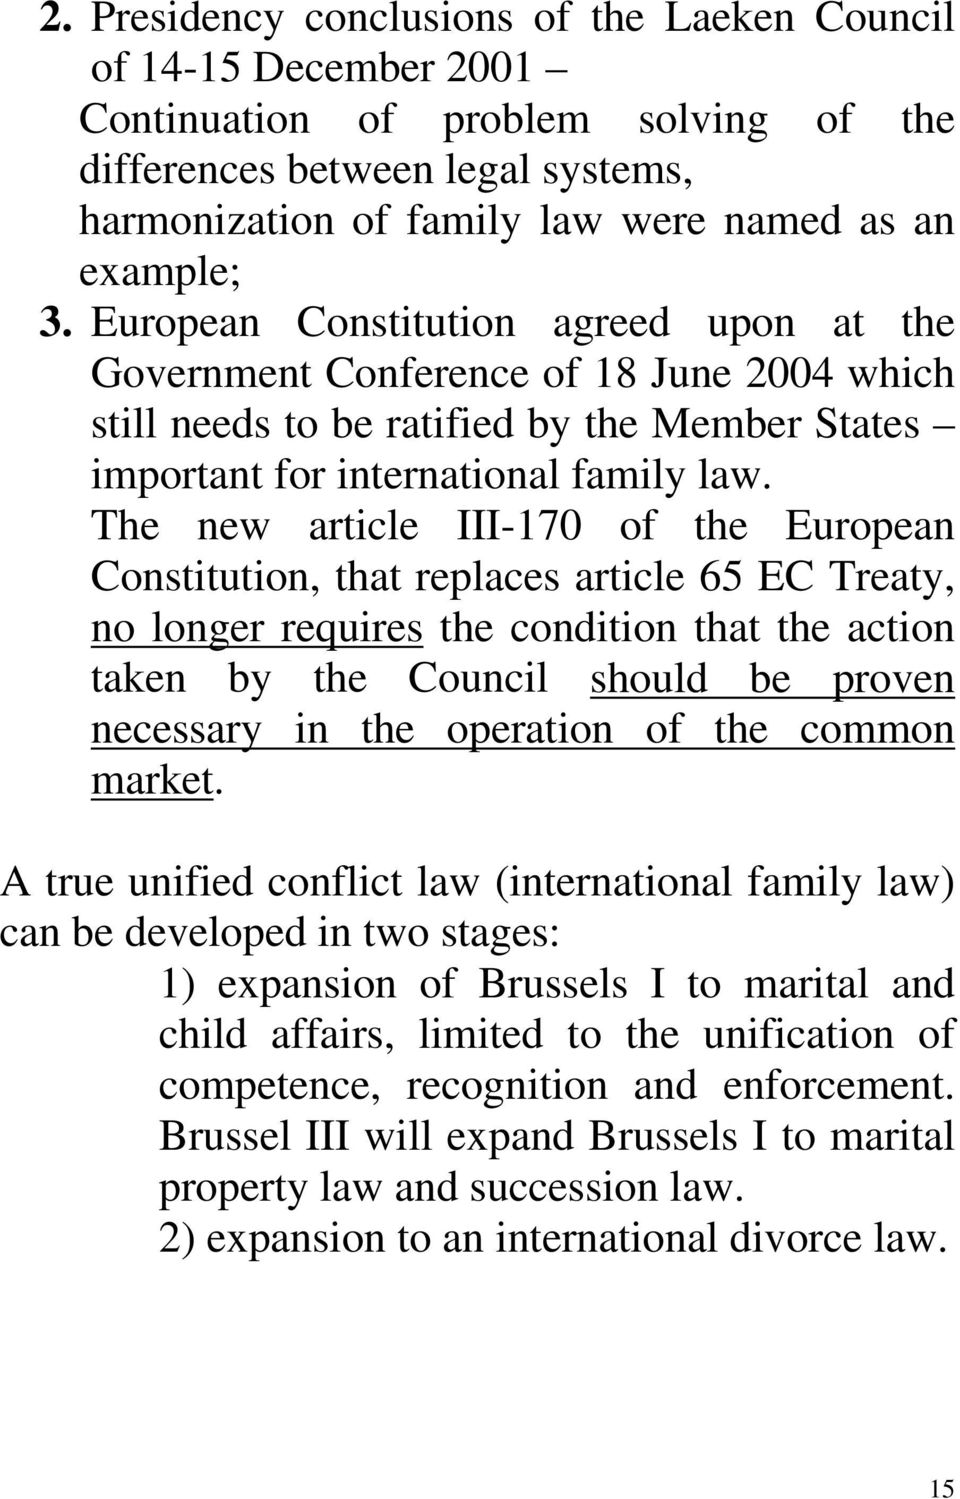 The new article III-170 of the European Constitution, that replaces article 65 EC Treaty, no longer requires the condition that the action taken by the Council should be proven necessary in the